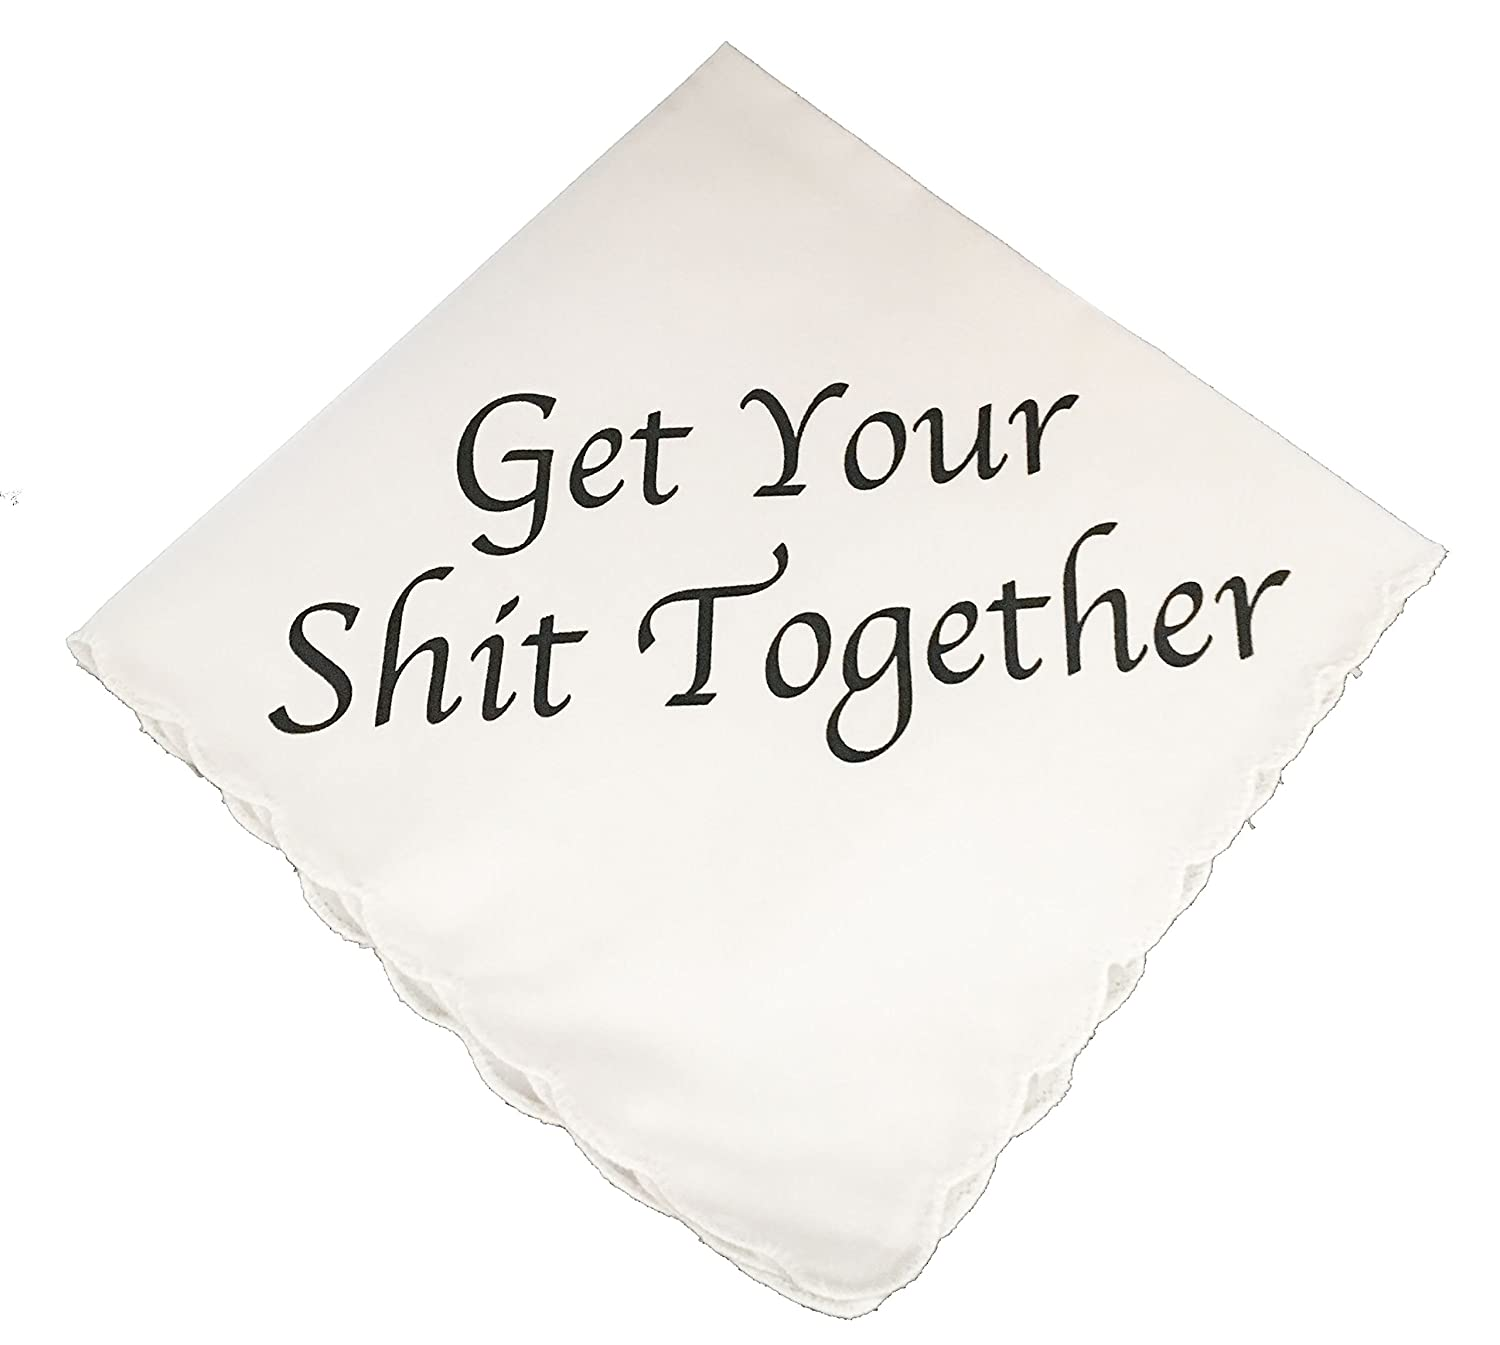 Get Your Shit Together Wedding Handkerchief by Wedding Tokens- Perfect Bridesmaid Gift